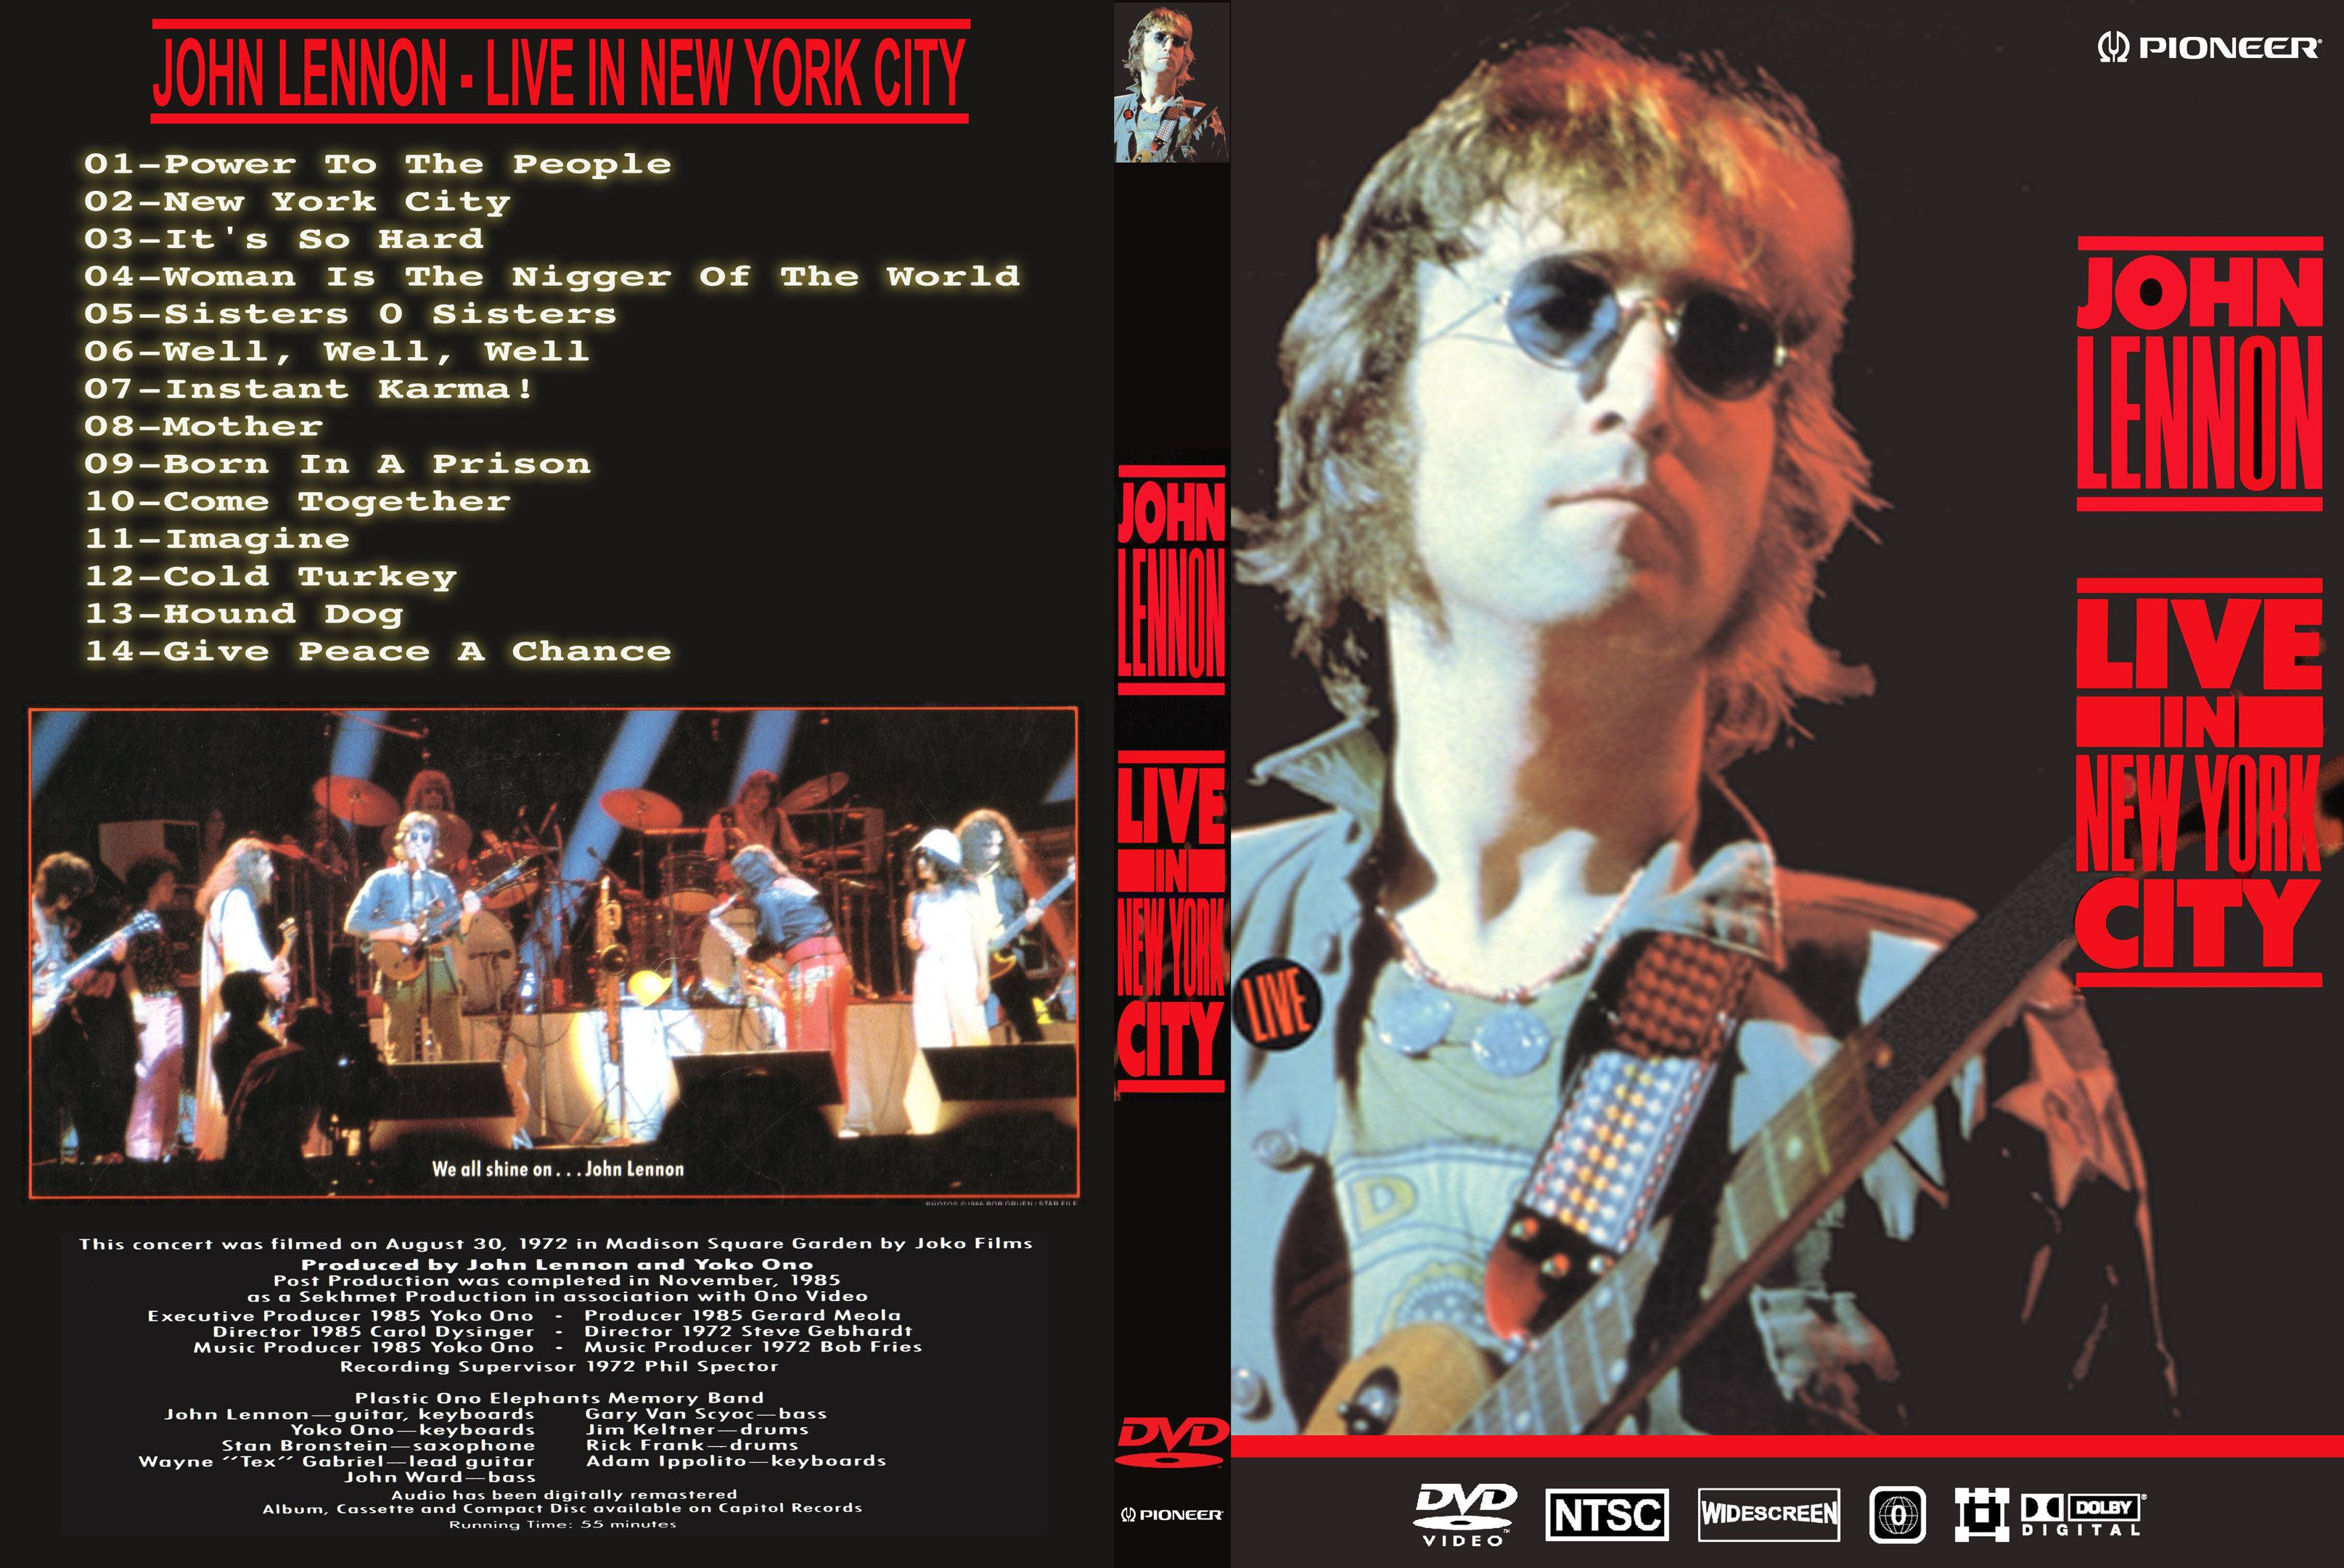 John Lennon Live In New York Dvd Us Dvd Covers Cover Century Over 500 000 Album Art Covers For Free